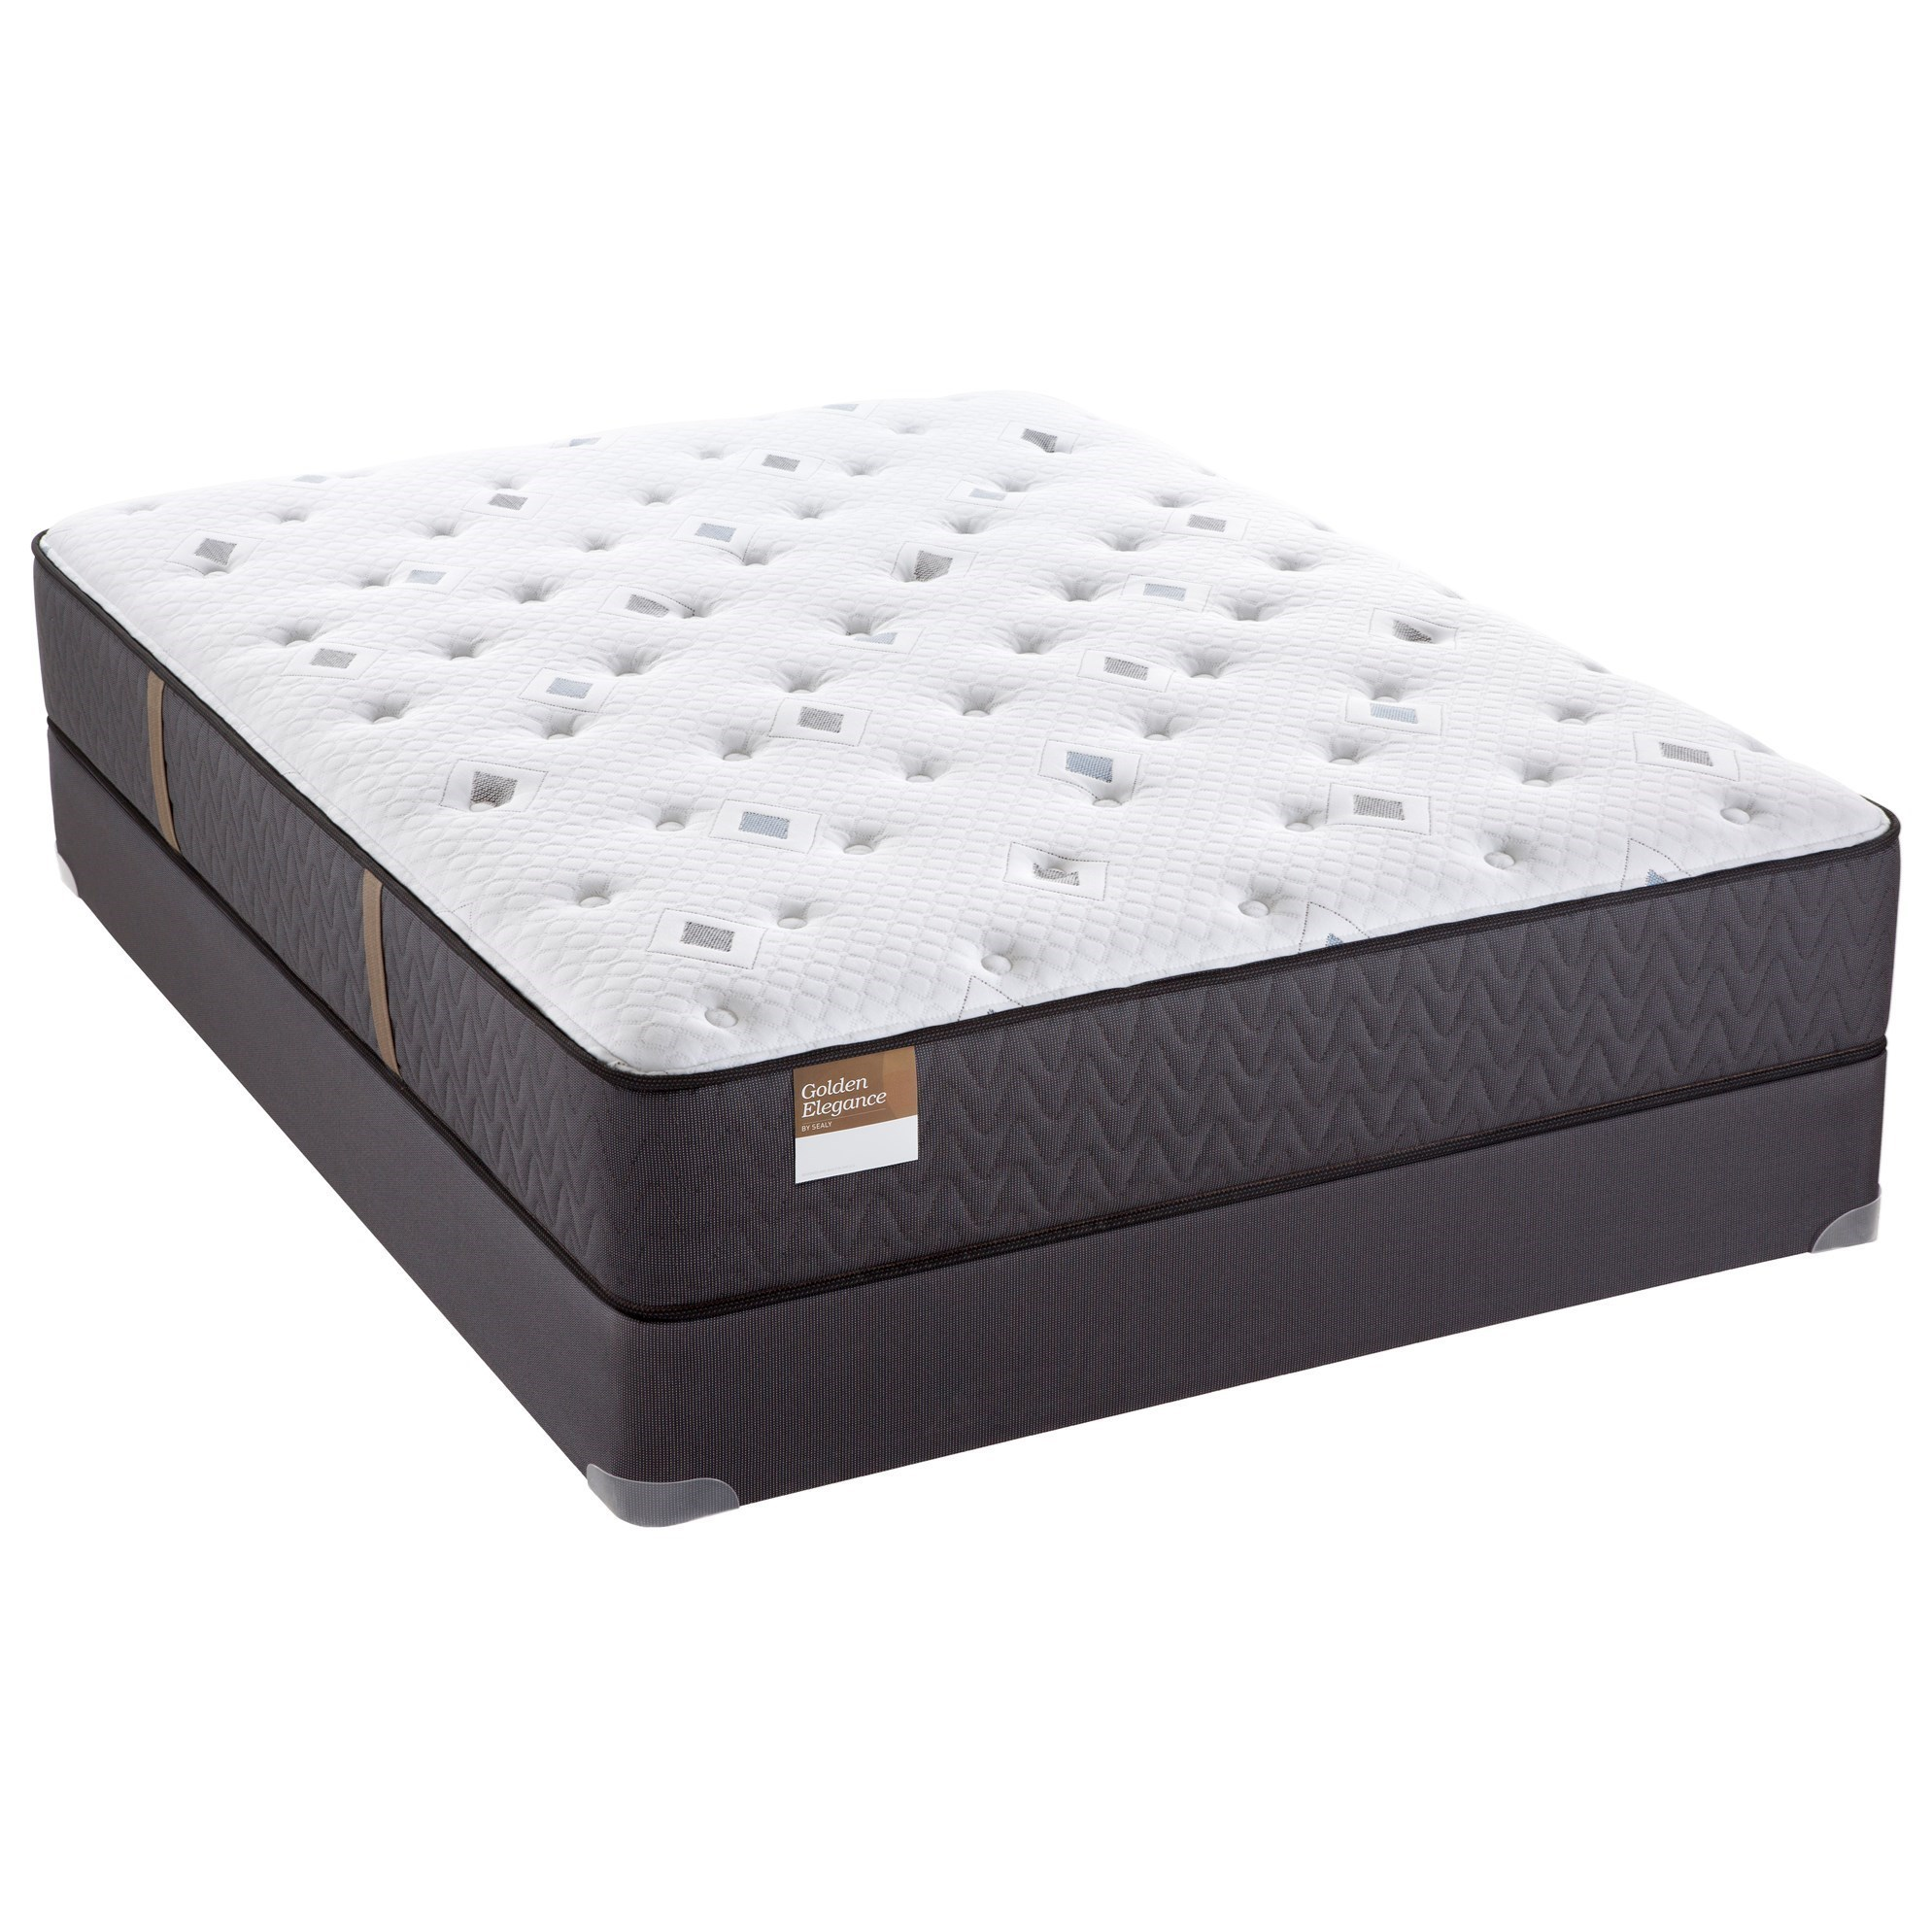 "Sealy Etherial Gold Queen 12 1 2"" Cushion Firm Mattress"